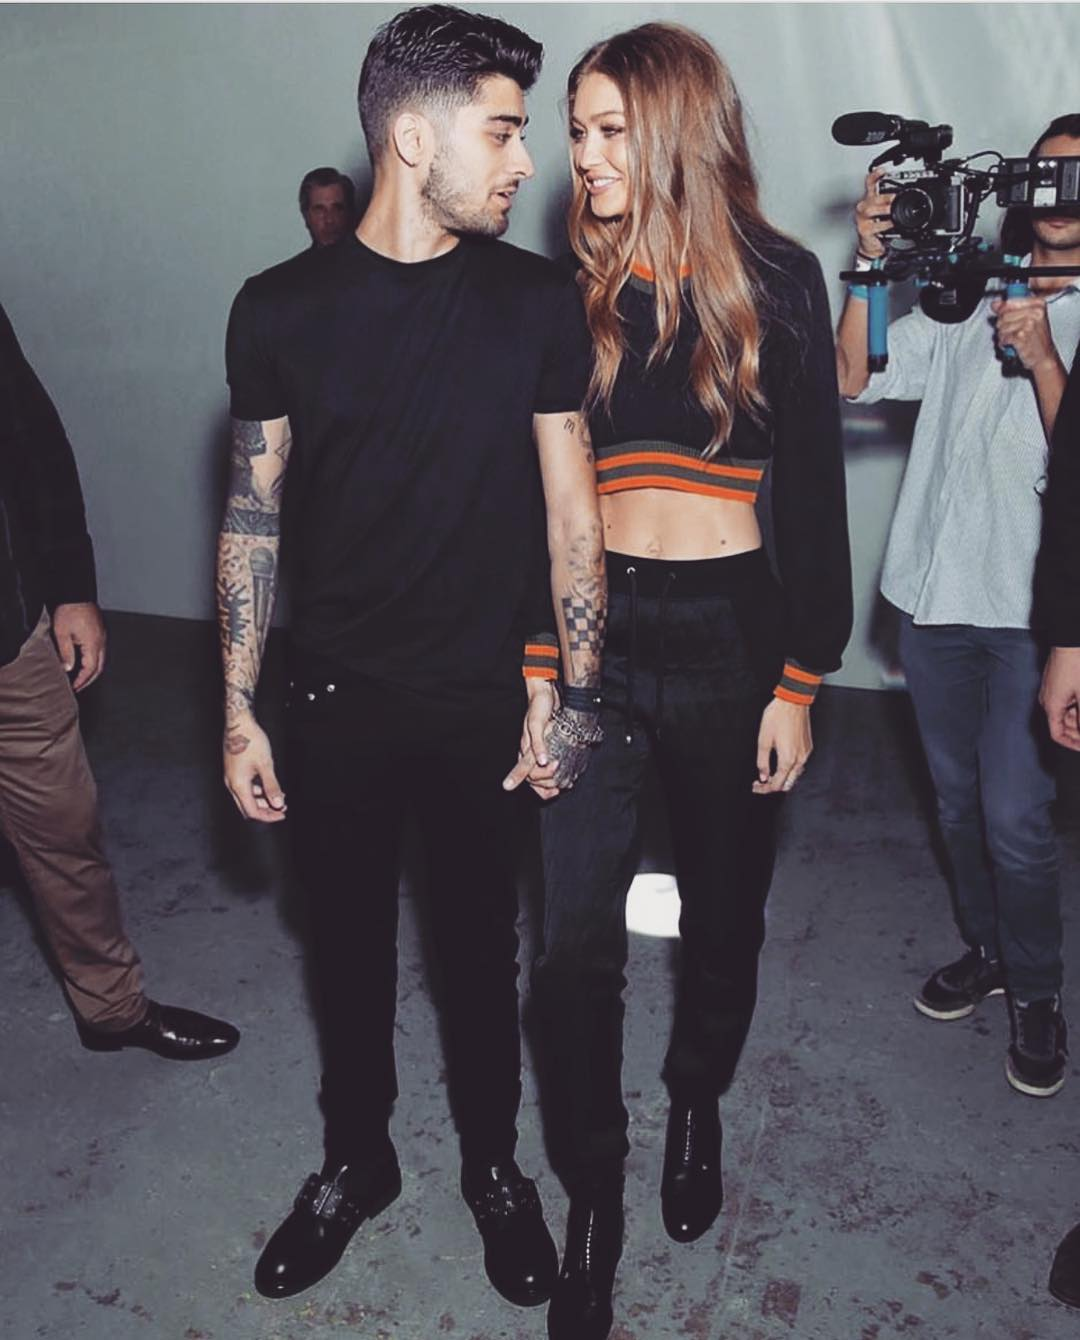 Gigi Hadid and Zayn Malik Can't Keep Their Eyes Off Each Other at London Fashion Week